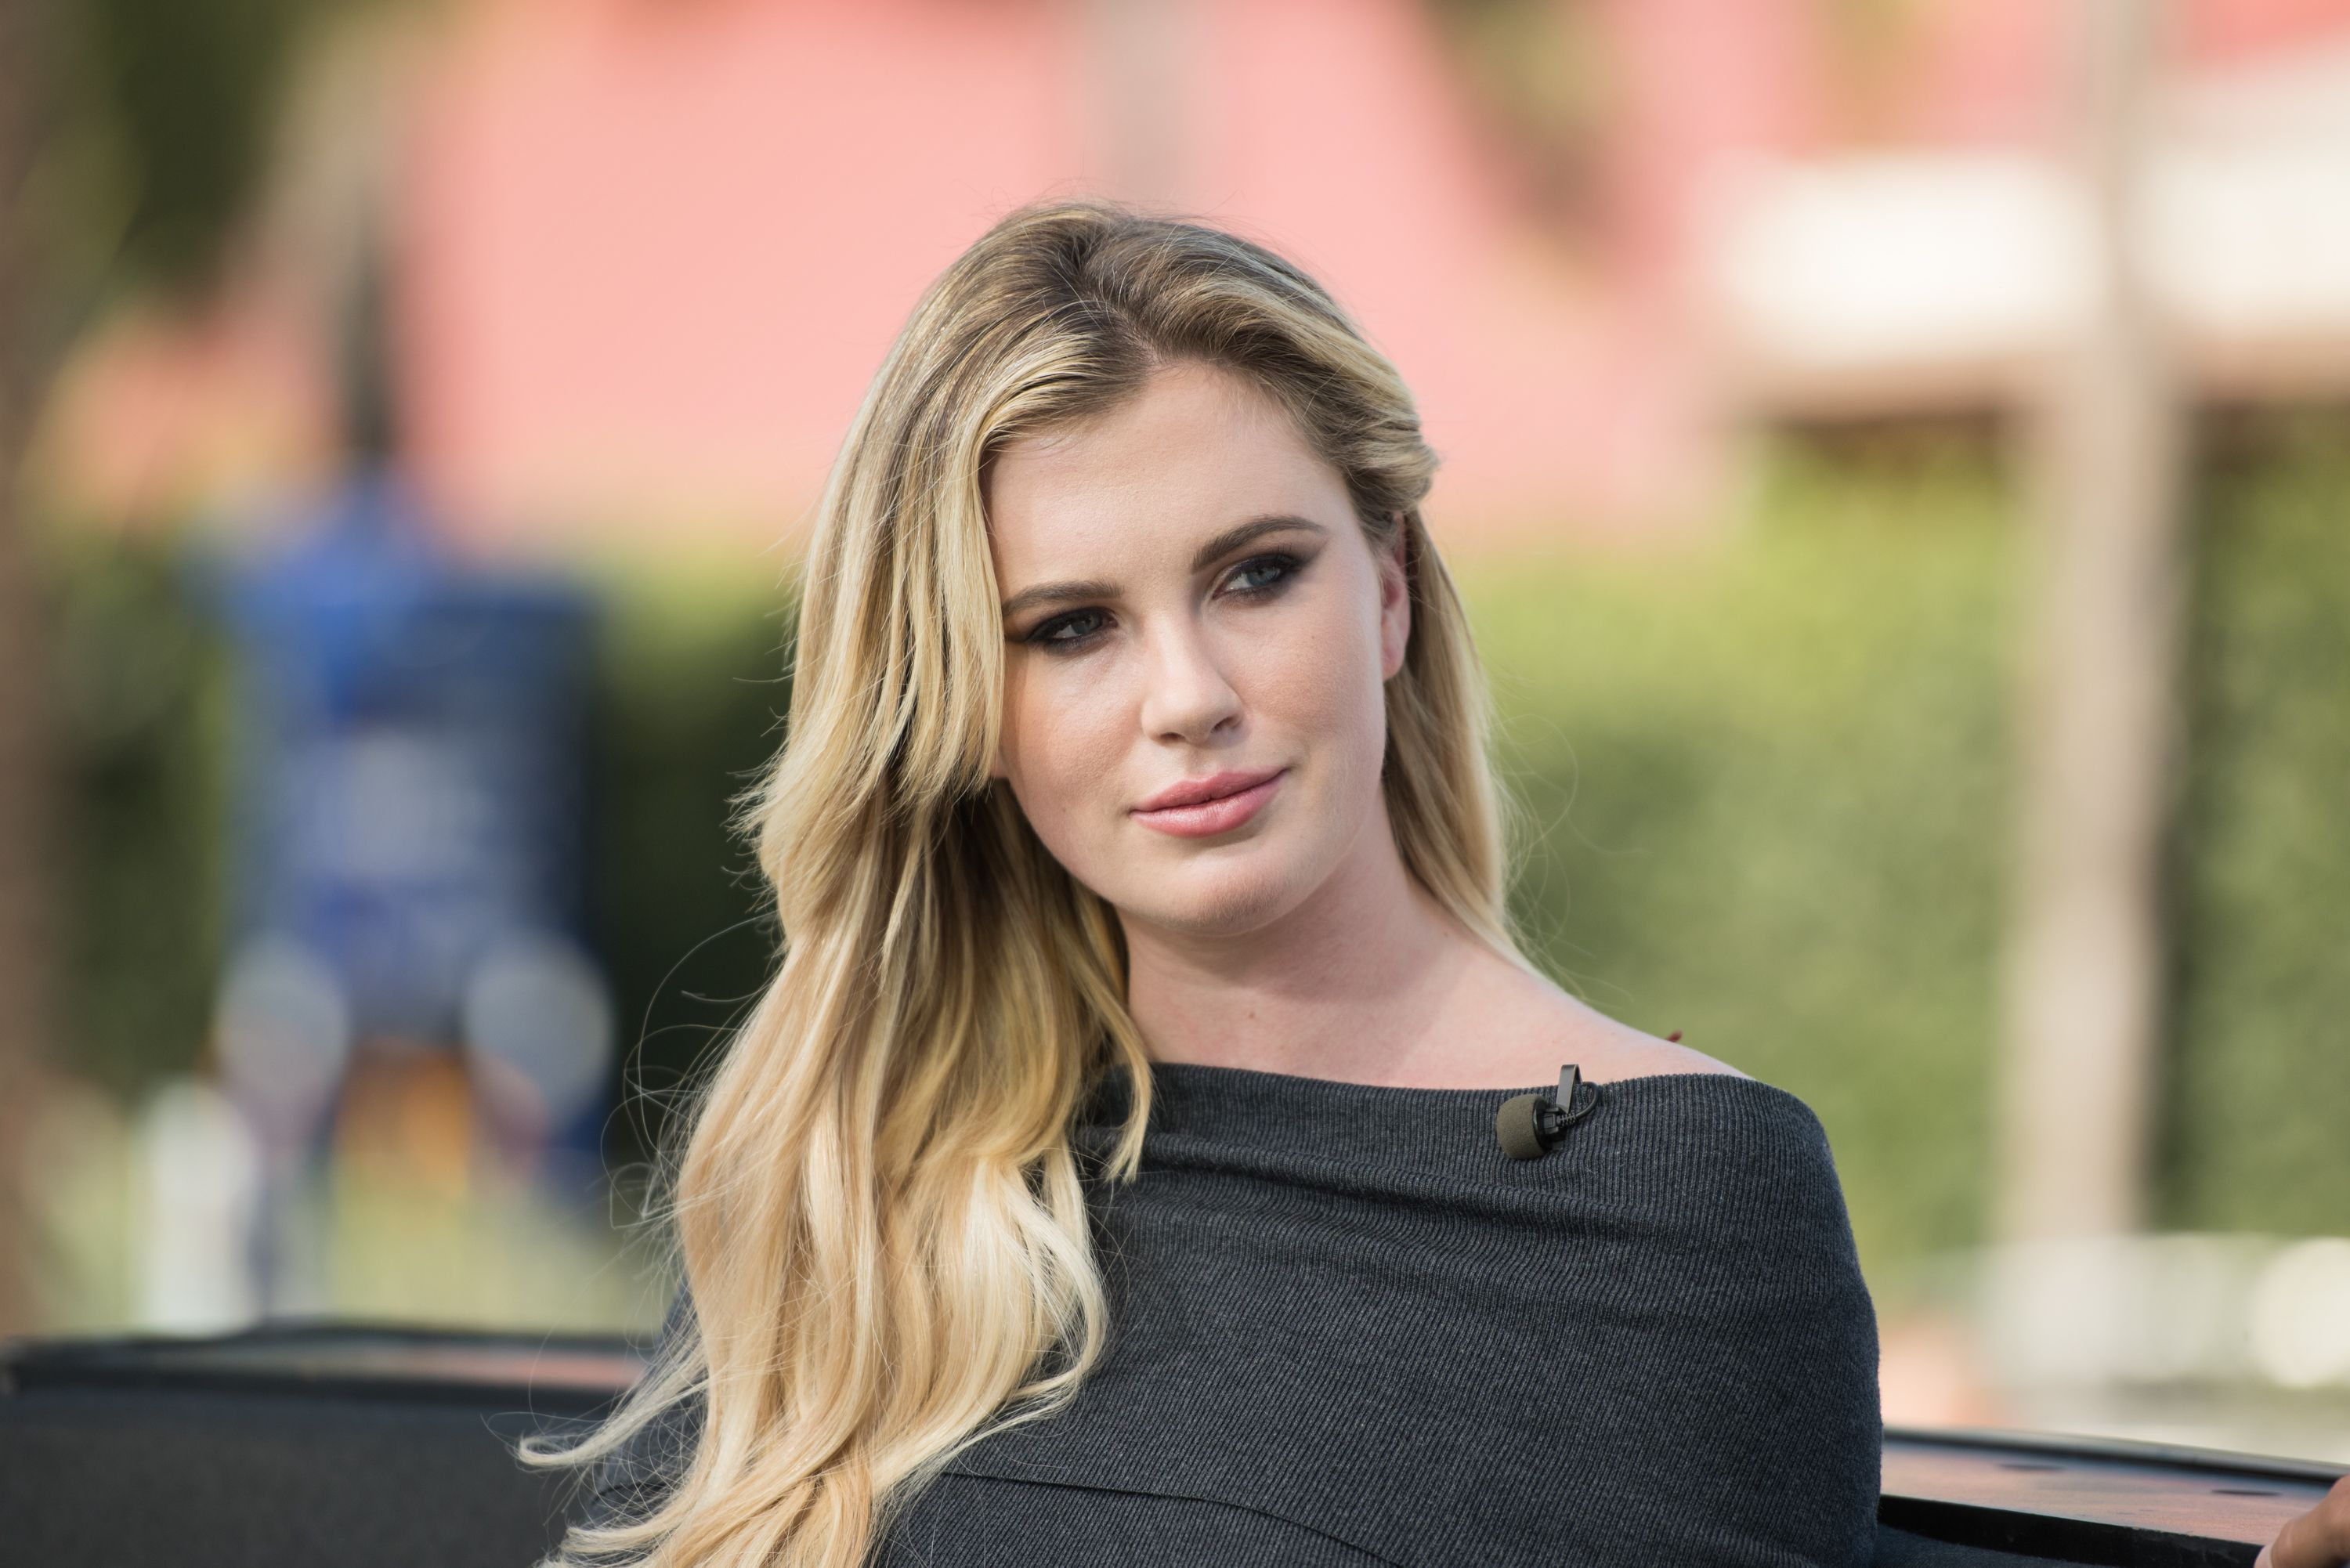 Ireland Baldwin Posted a Nude Photo on Instagram and Her Mom Is Fully Losing It